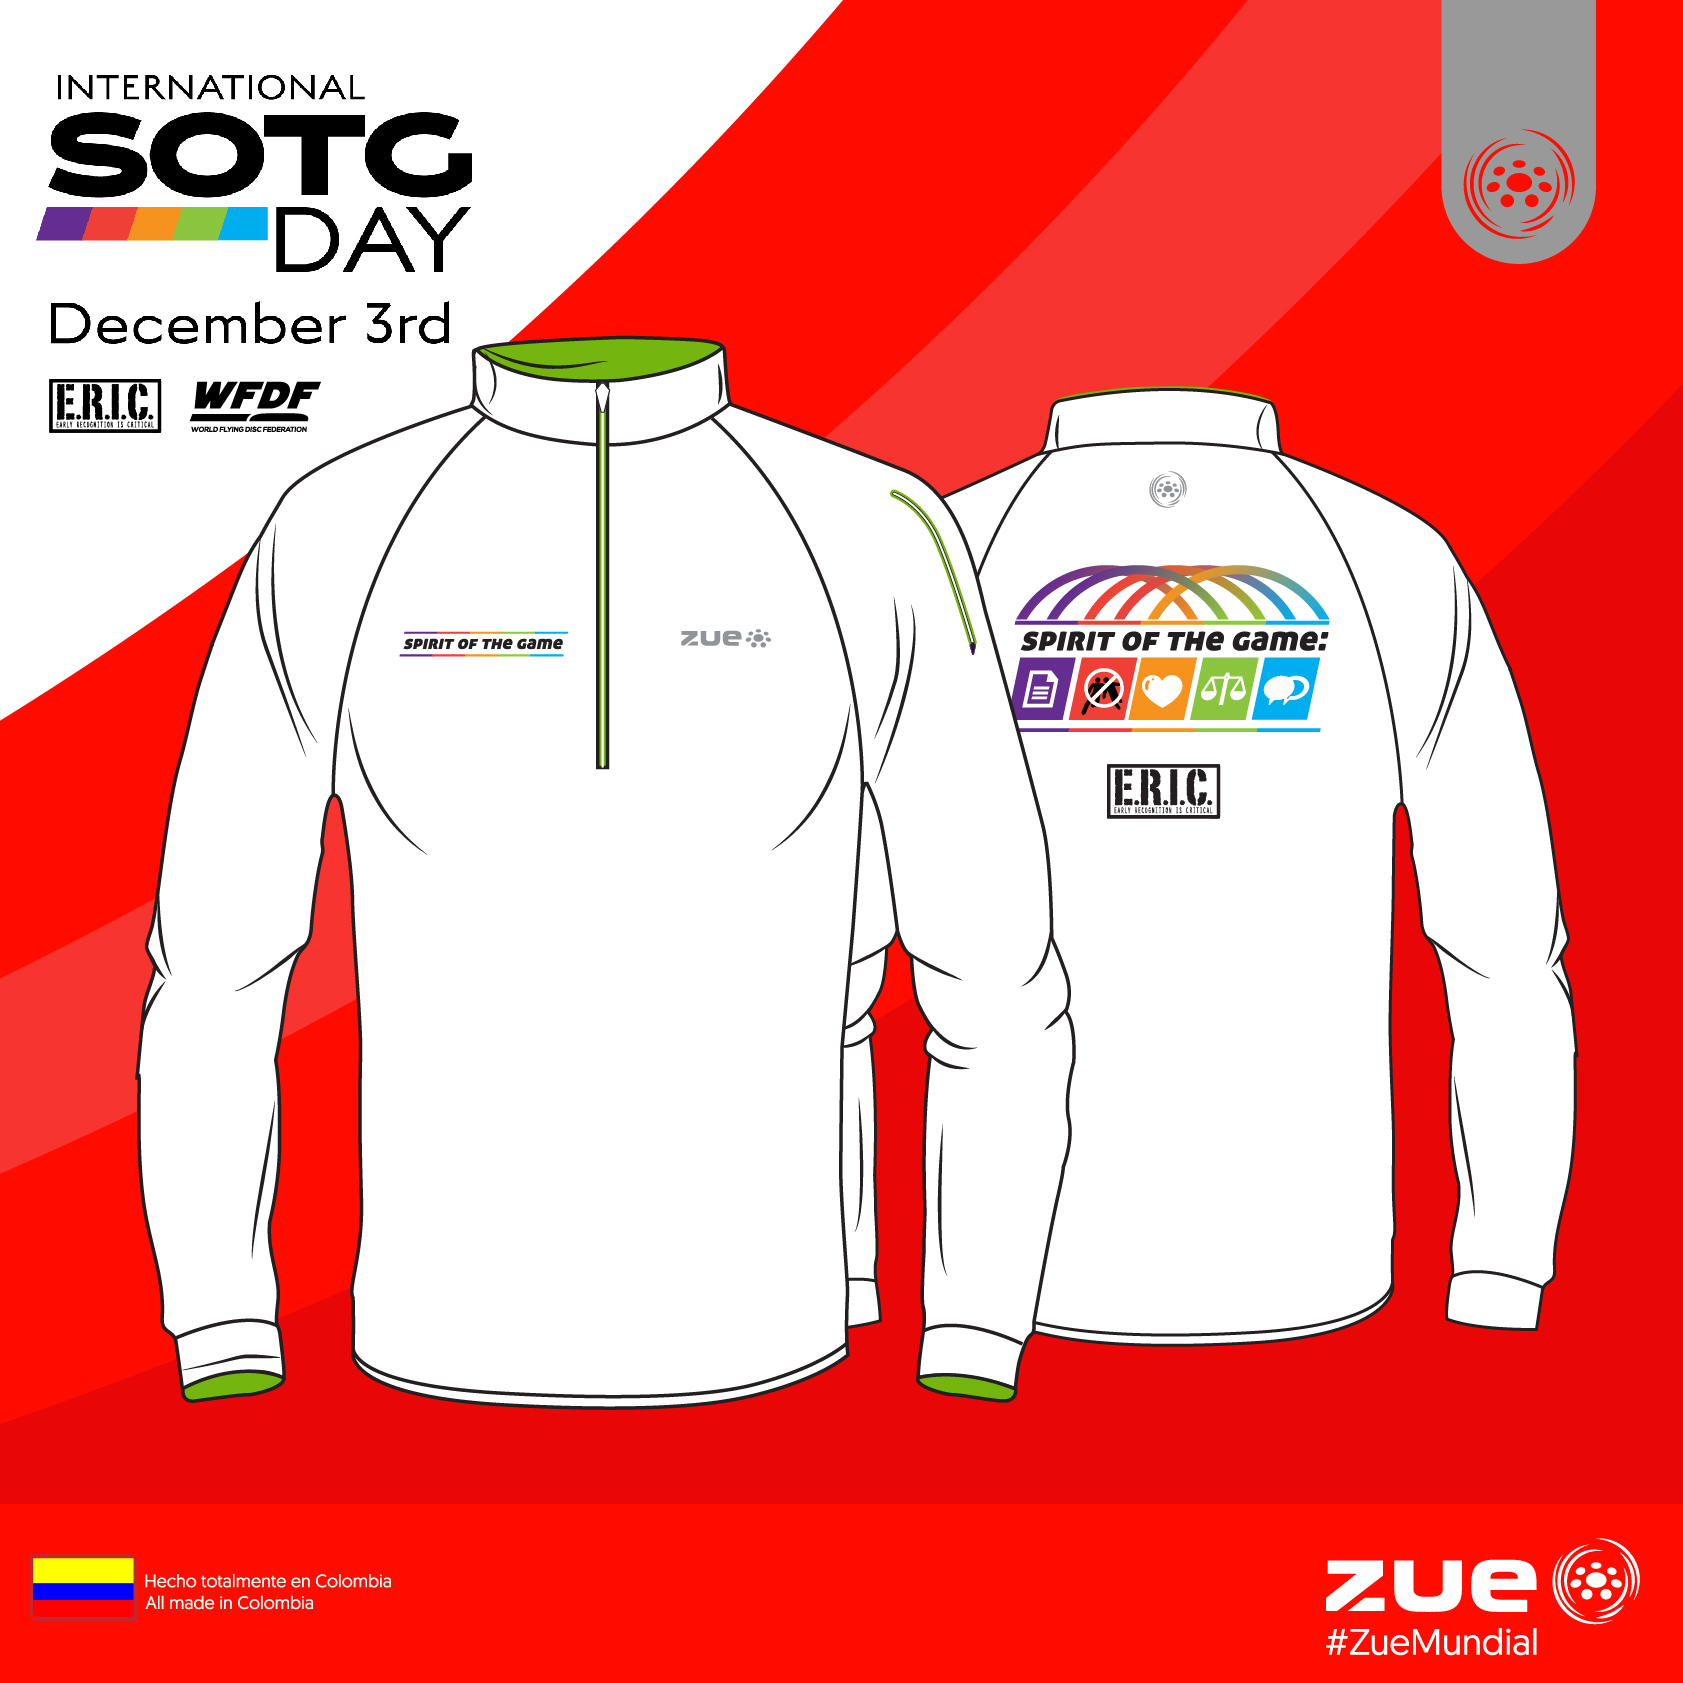 Drawing of SOTG Jersey from Zue